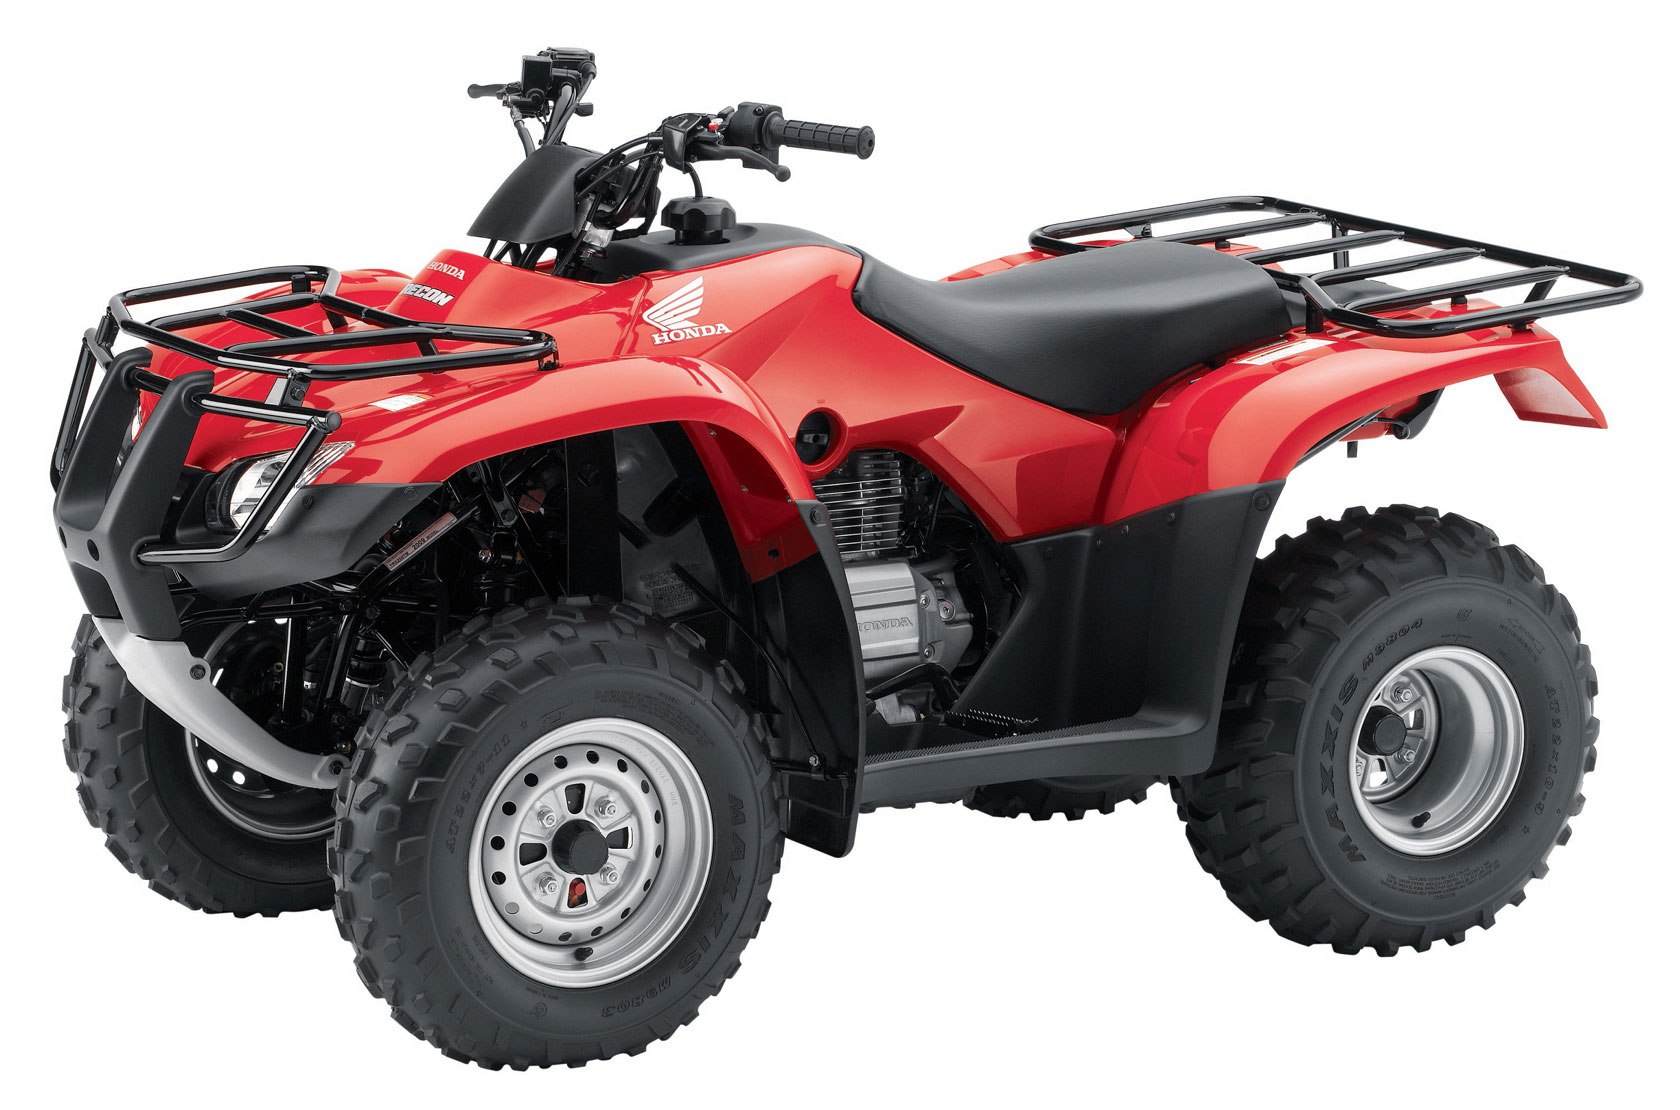 honda fourtrax recon trx250tm 2008 2009 autoevolution. Black Bedroom Furniture Sets. Home Design Ideas